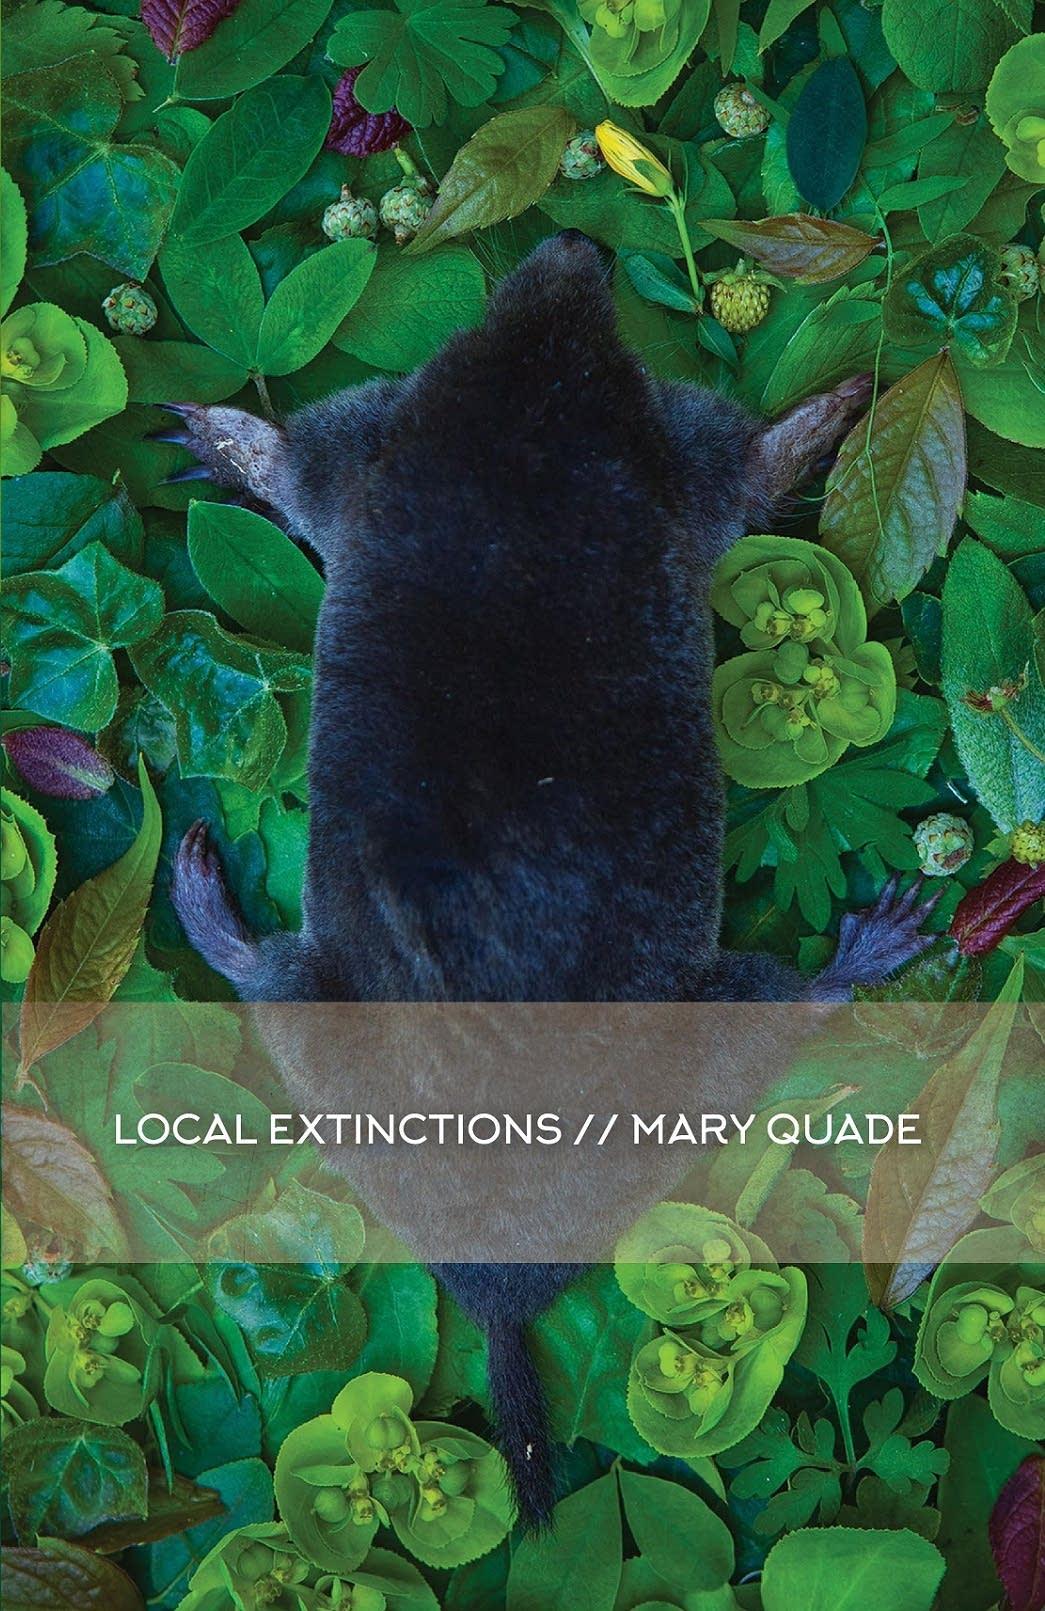 'Local Extinctions' by Mary Quade